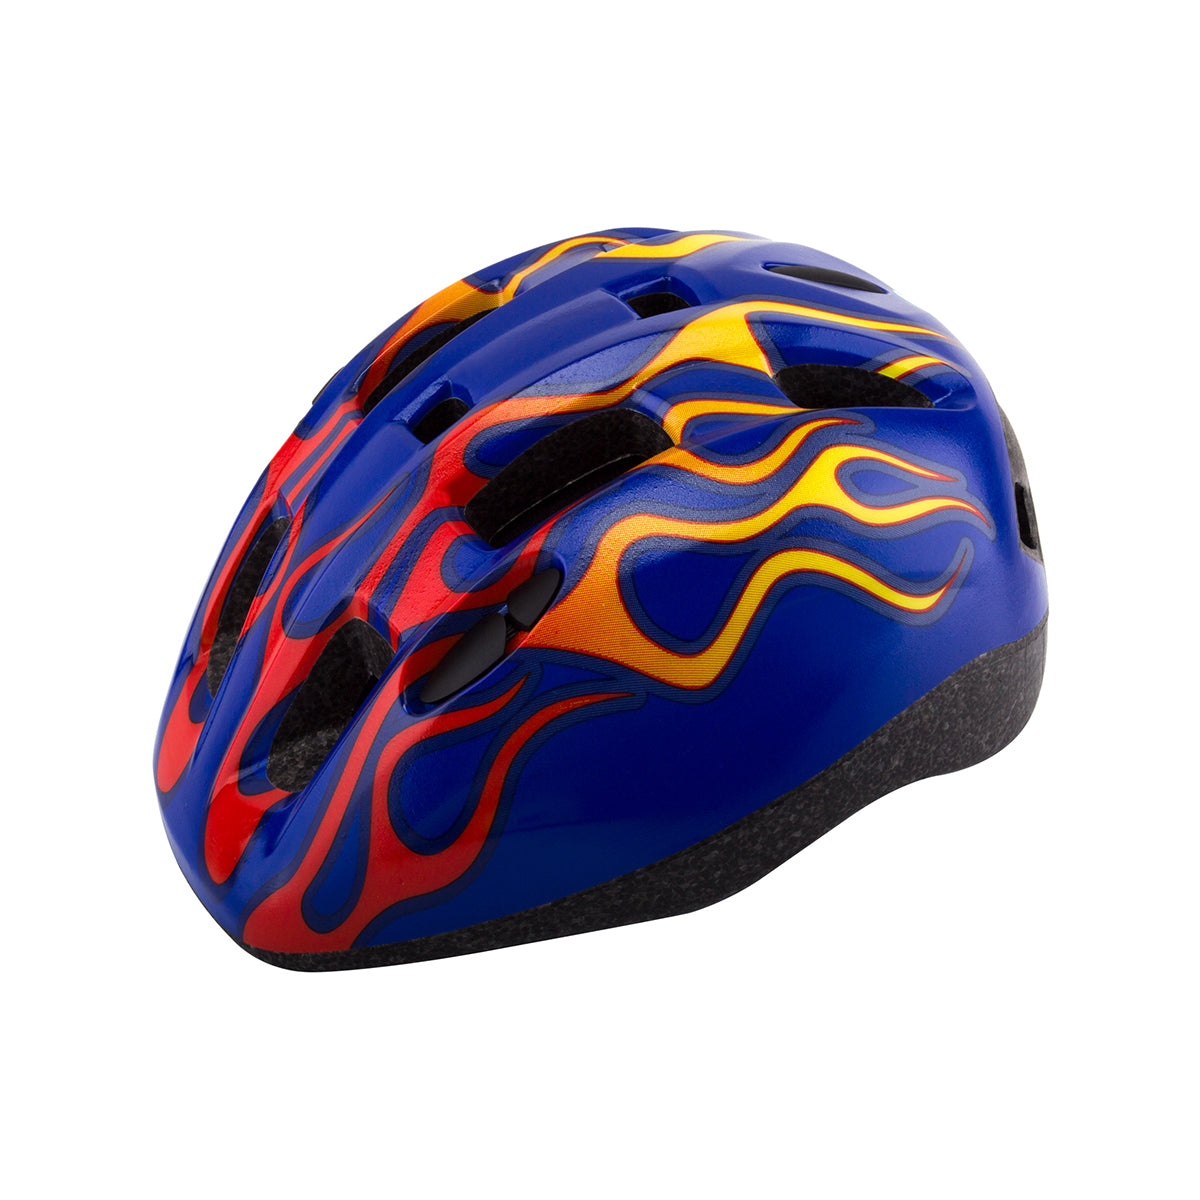 Aerius V11 Toddler Helmet - Blue/Flames